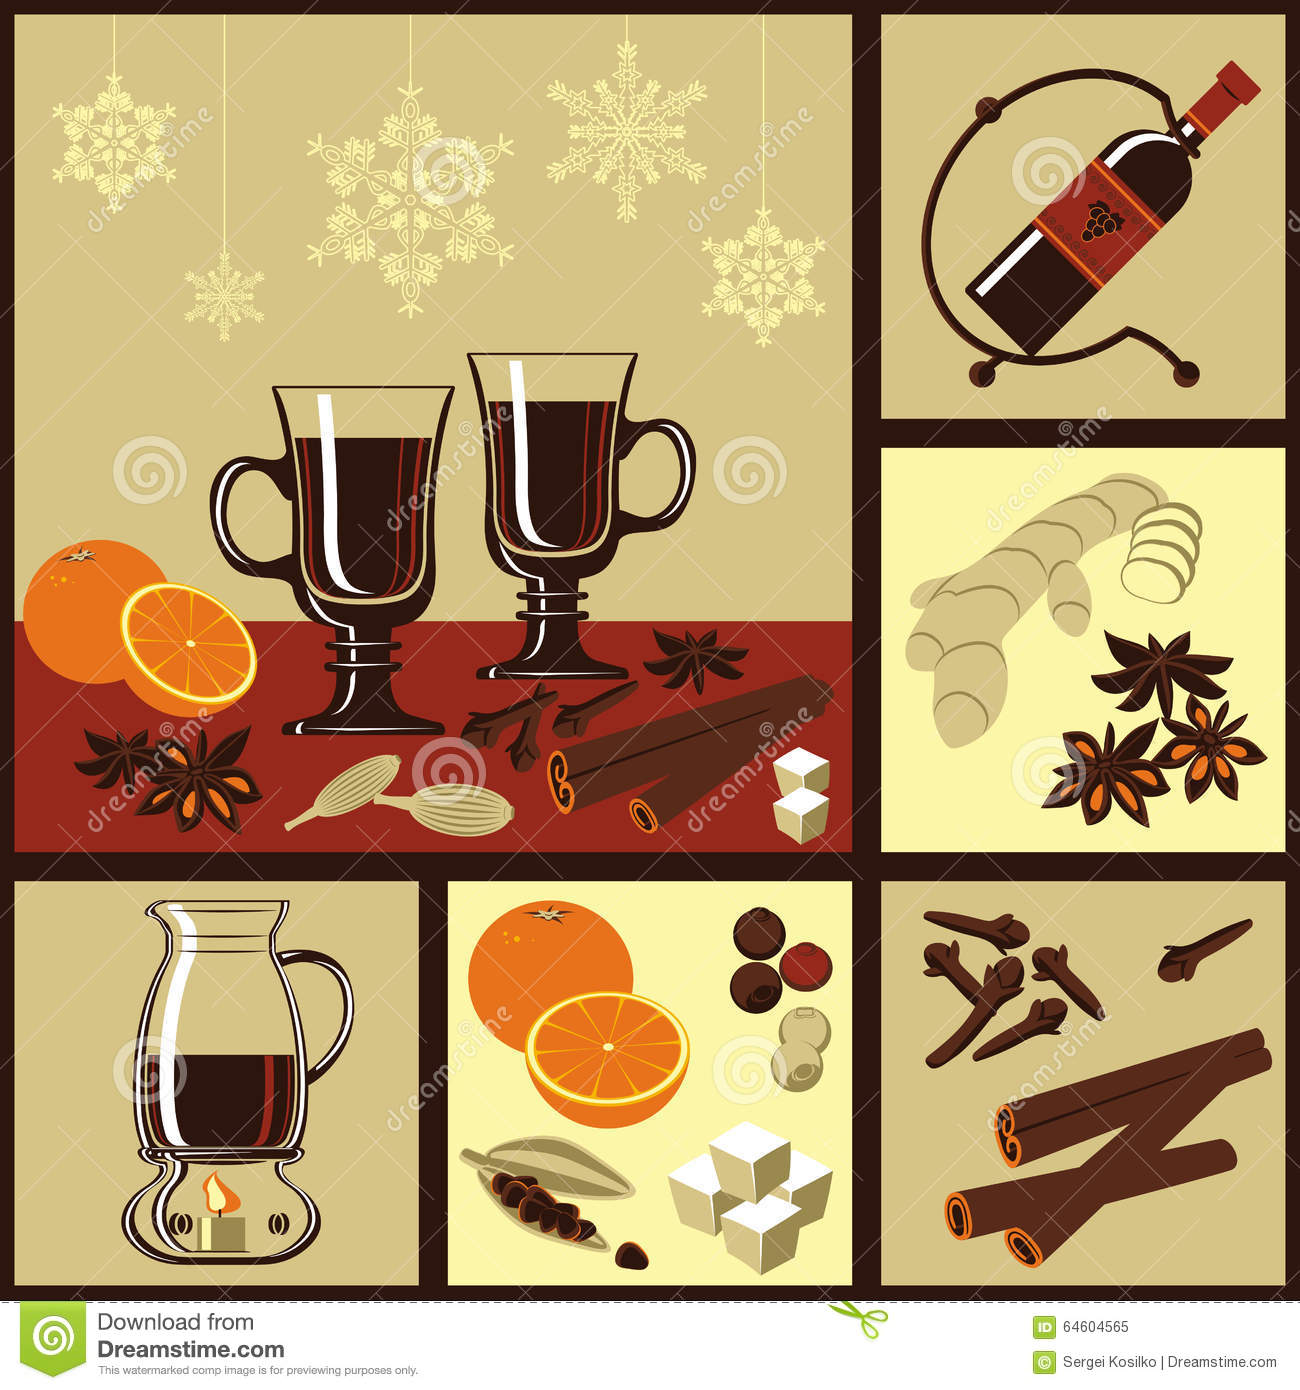 Ingredienser mulled wine